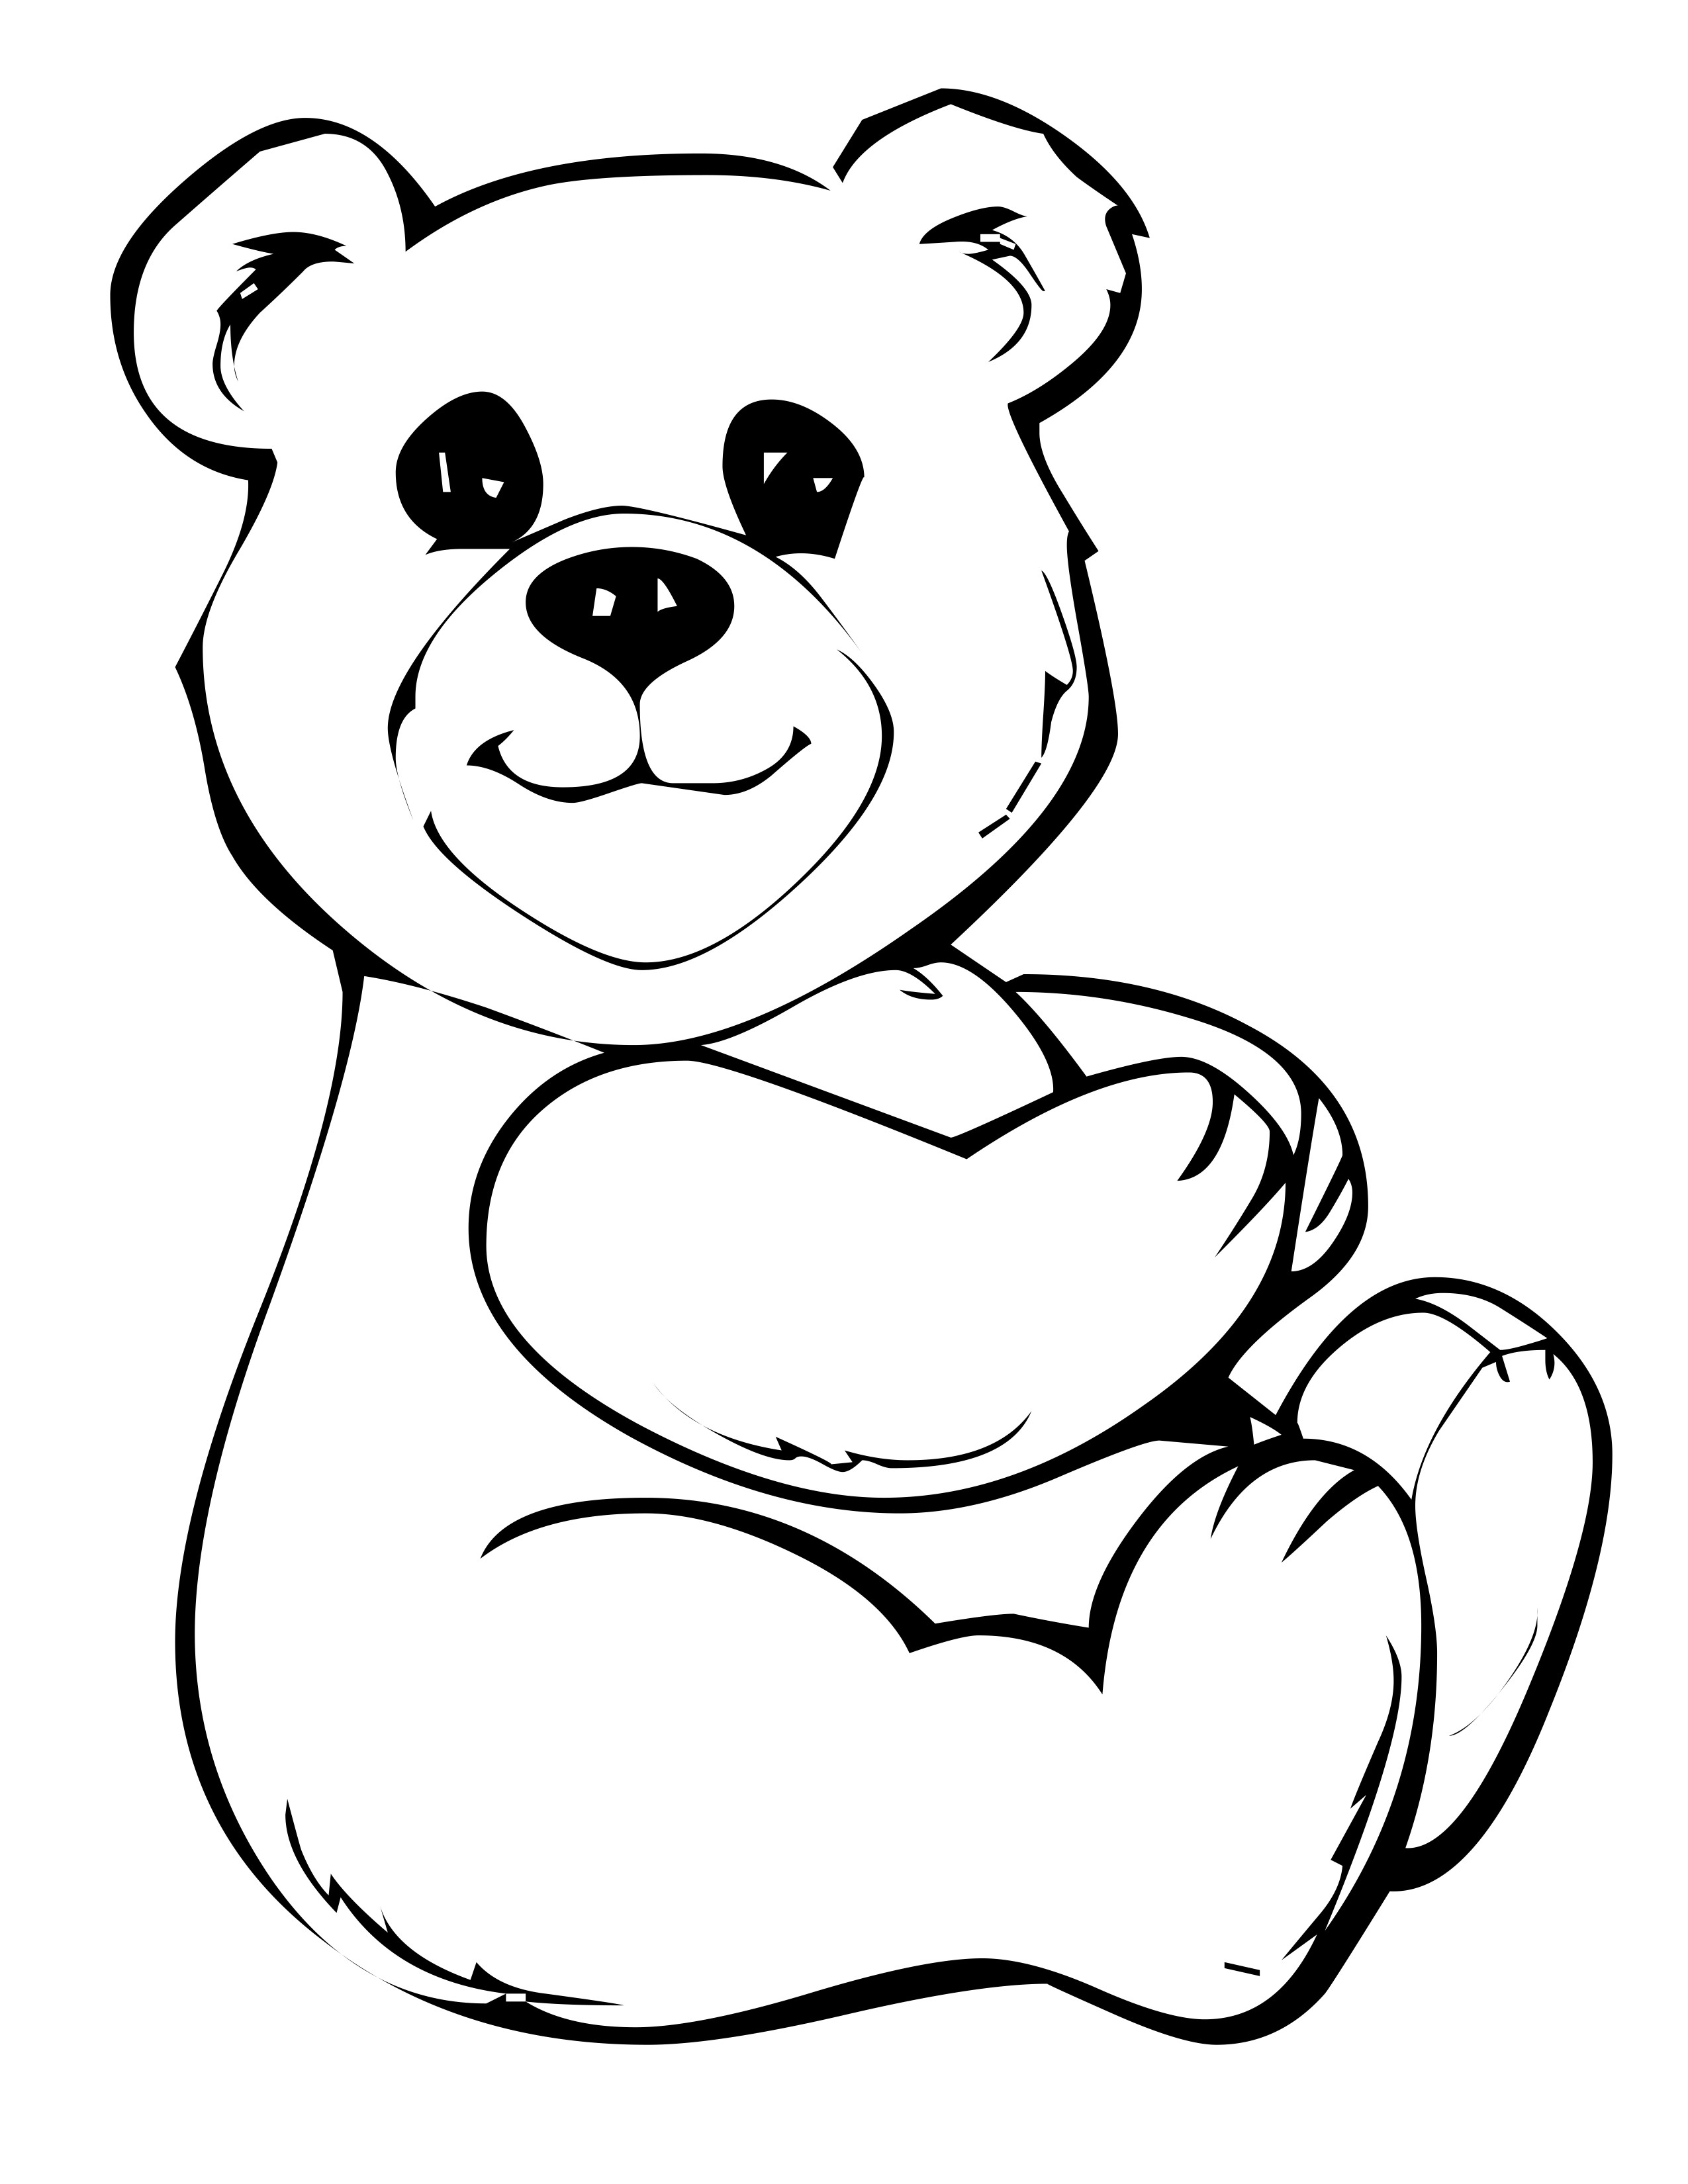 Free Printable Panda Coloring Pages For Kids | Animal Place